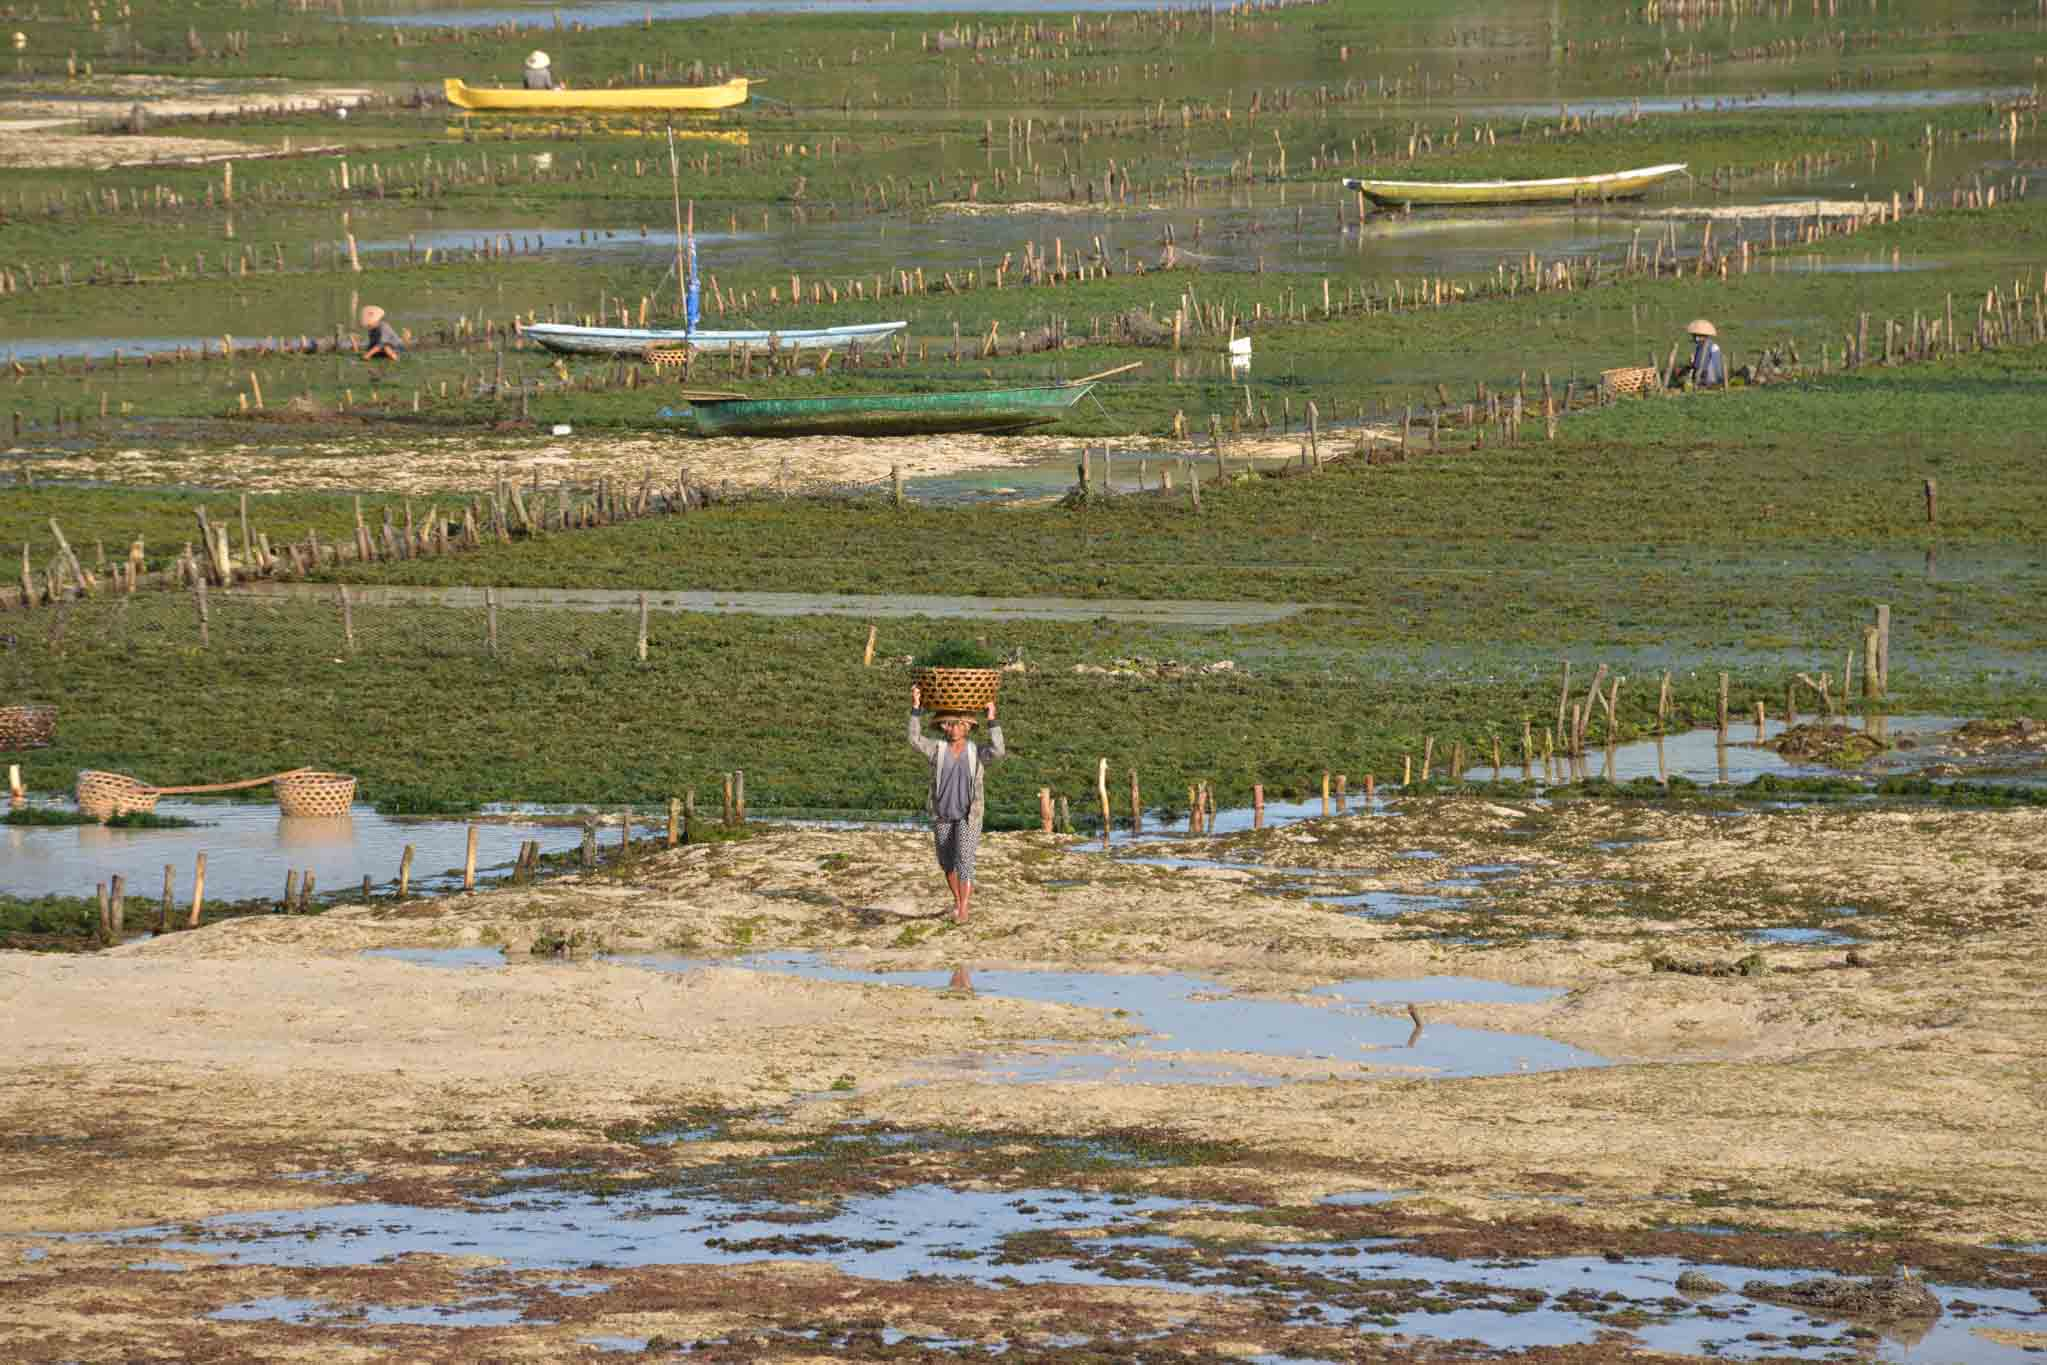 Low tide in Nusa Lembongan reveals the vast and intricate seaweed farms